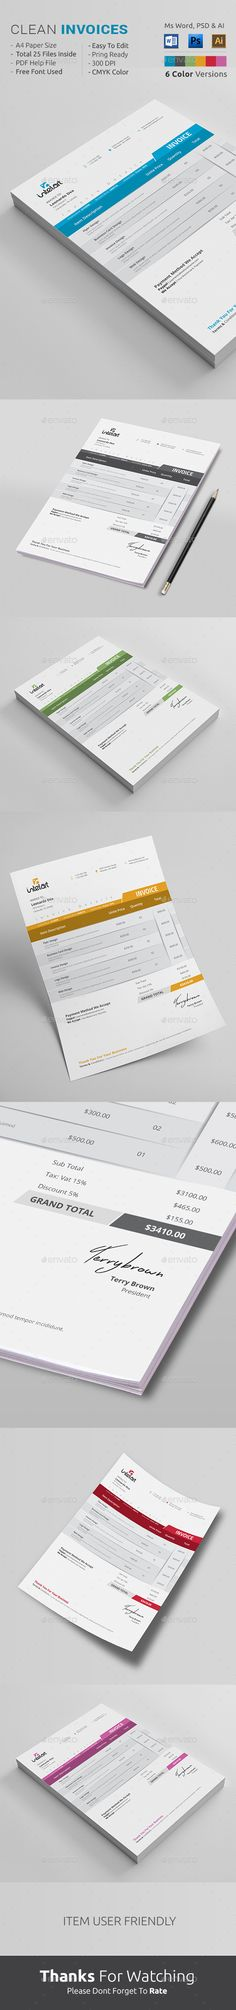 Clean Invoice  Photoshop Briefs And Design